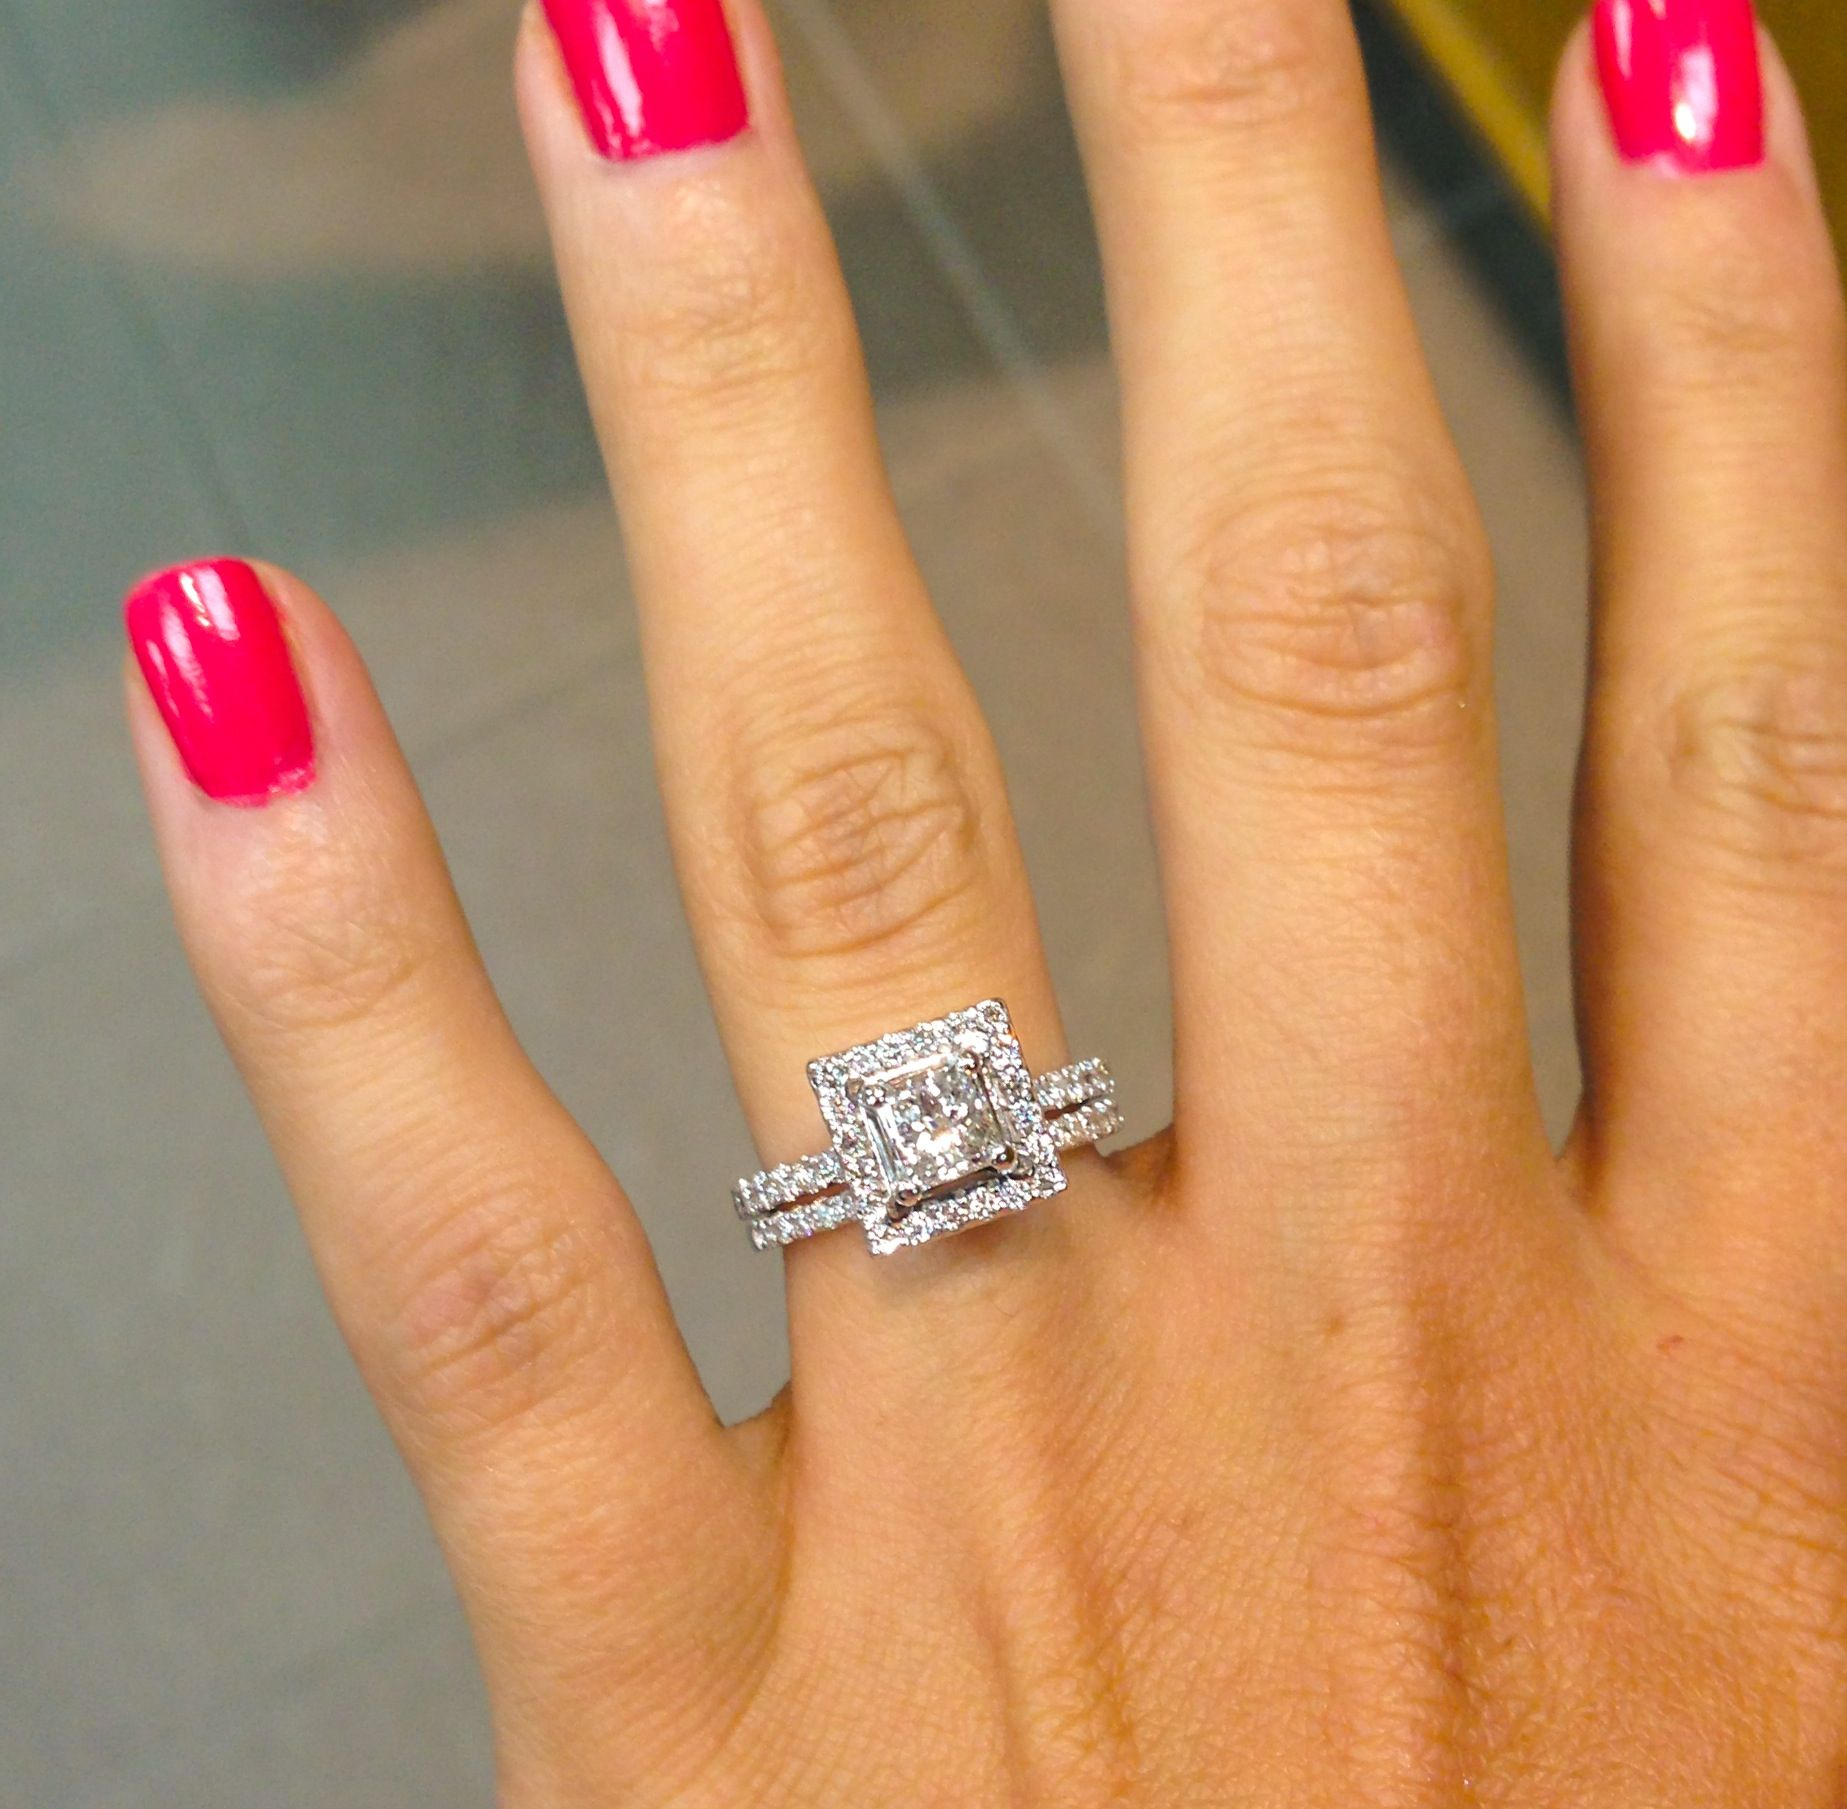 Awesome Princess Cut Diamond Engagement Ring and Wedding Band